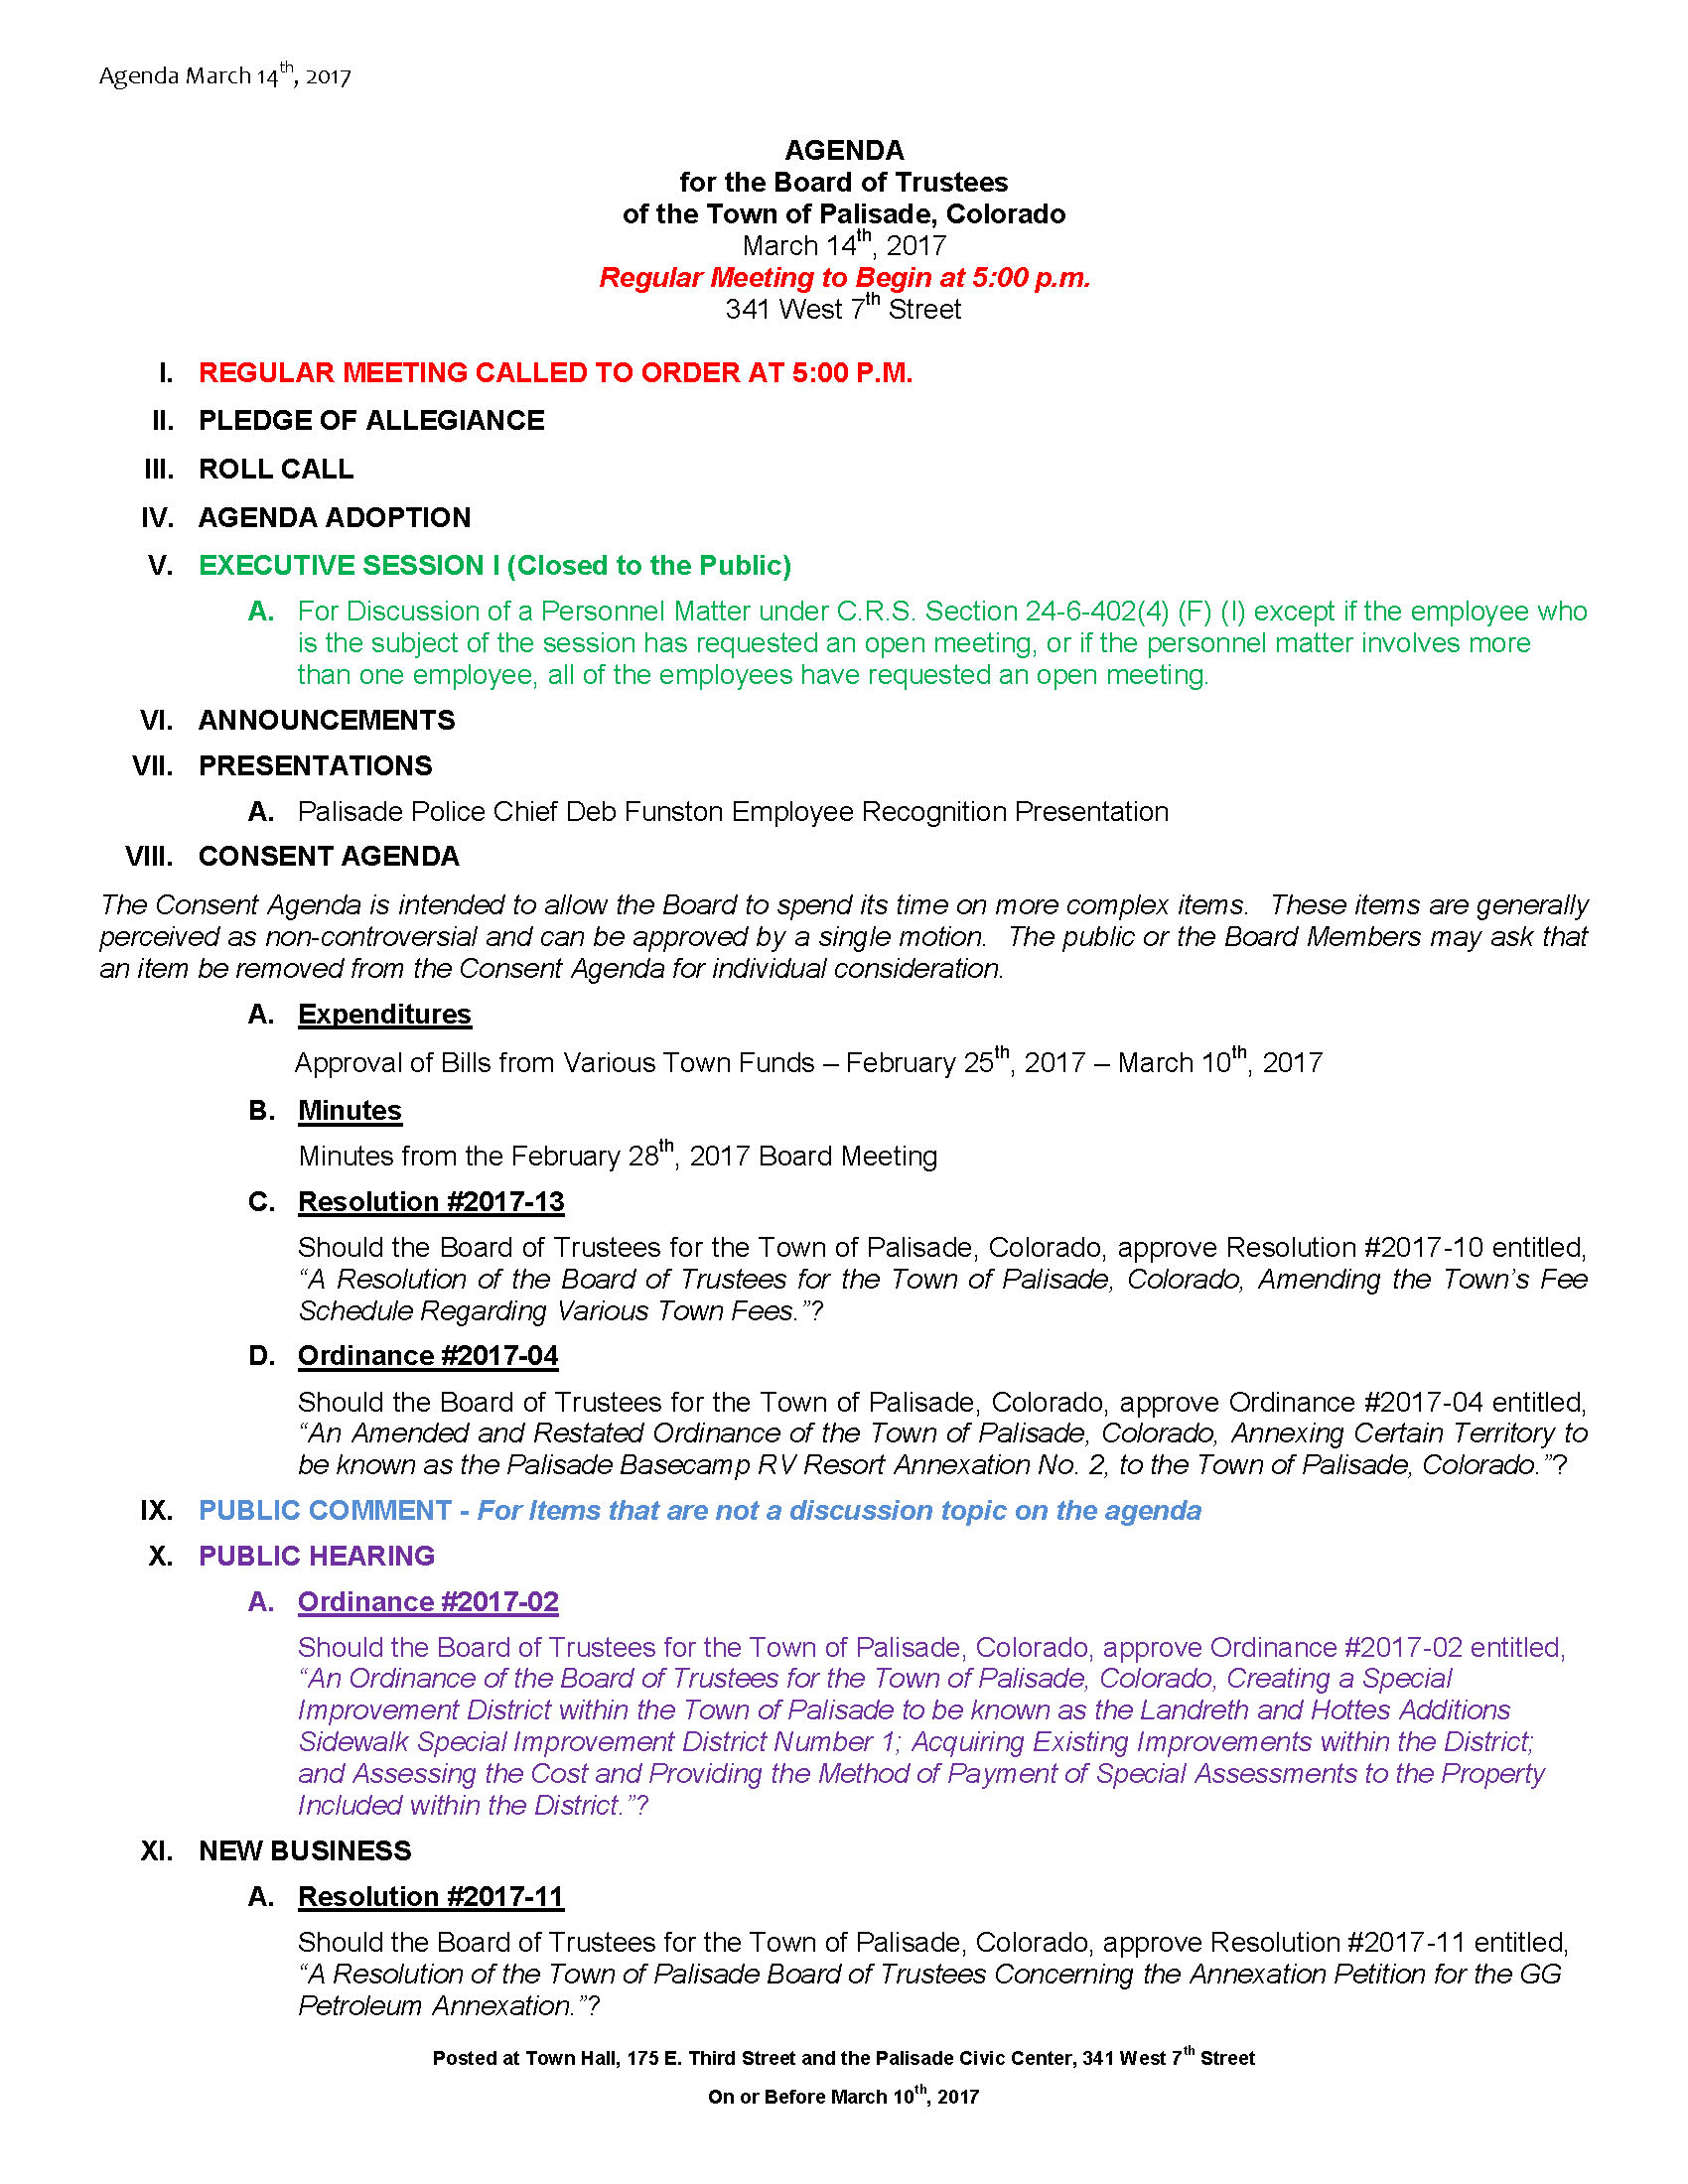 March 14th 2017 Board Meeting Agenda Page 1